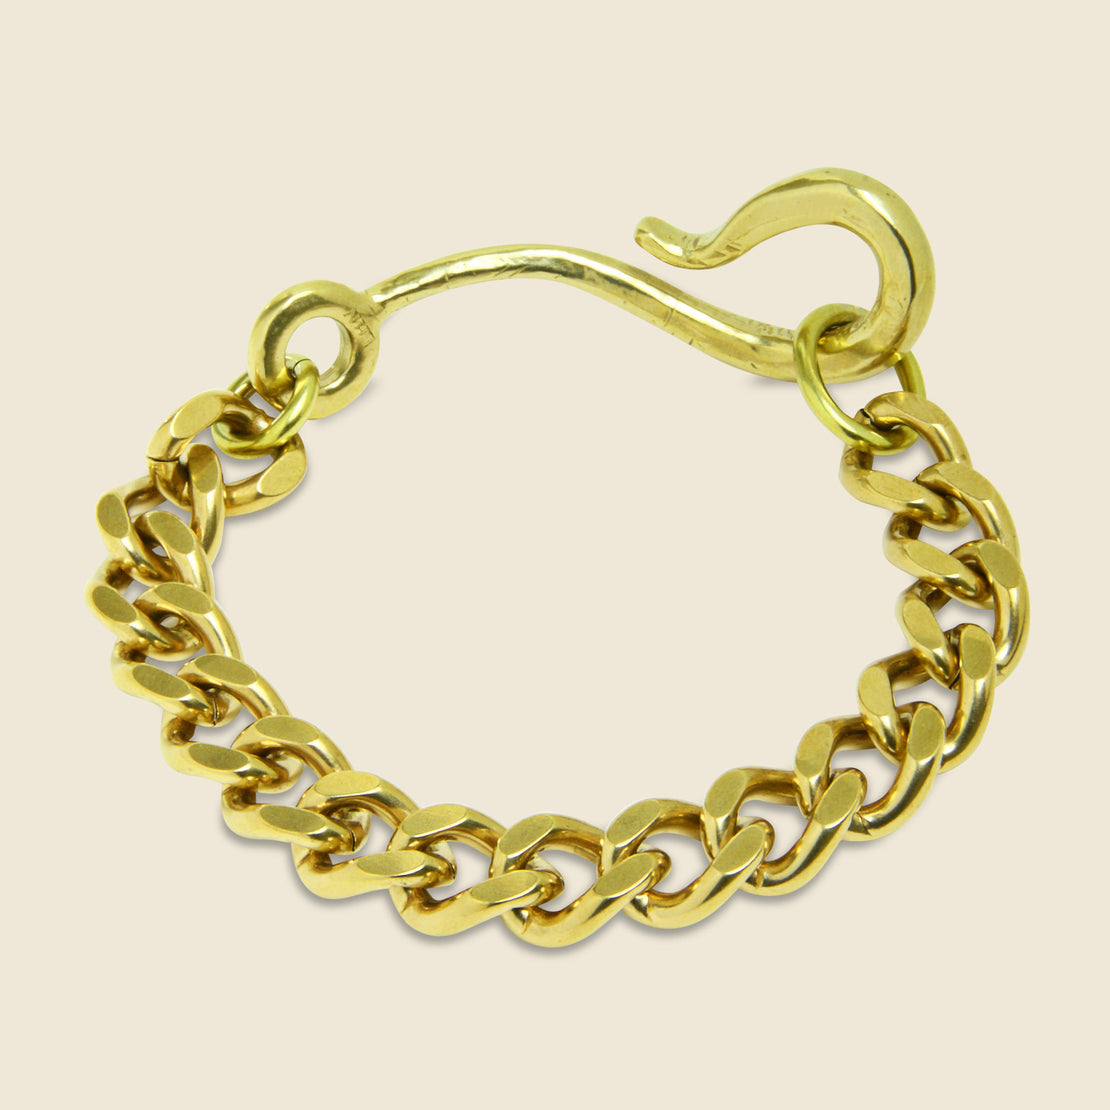 Large Hook Chain Bracelet - Brass